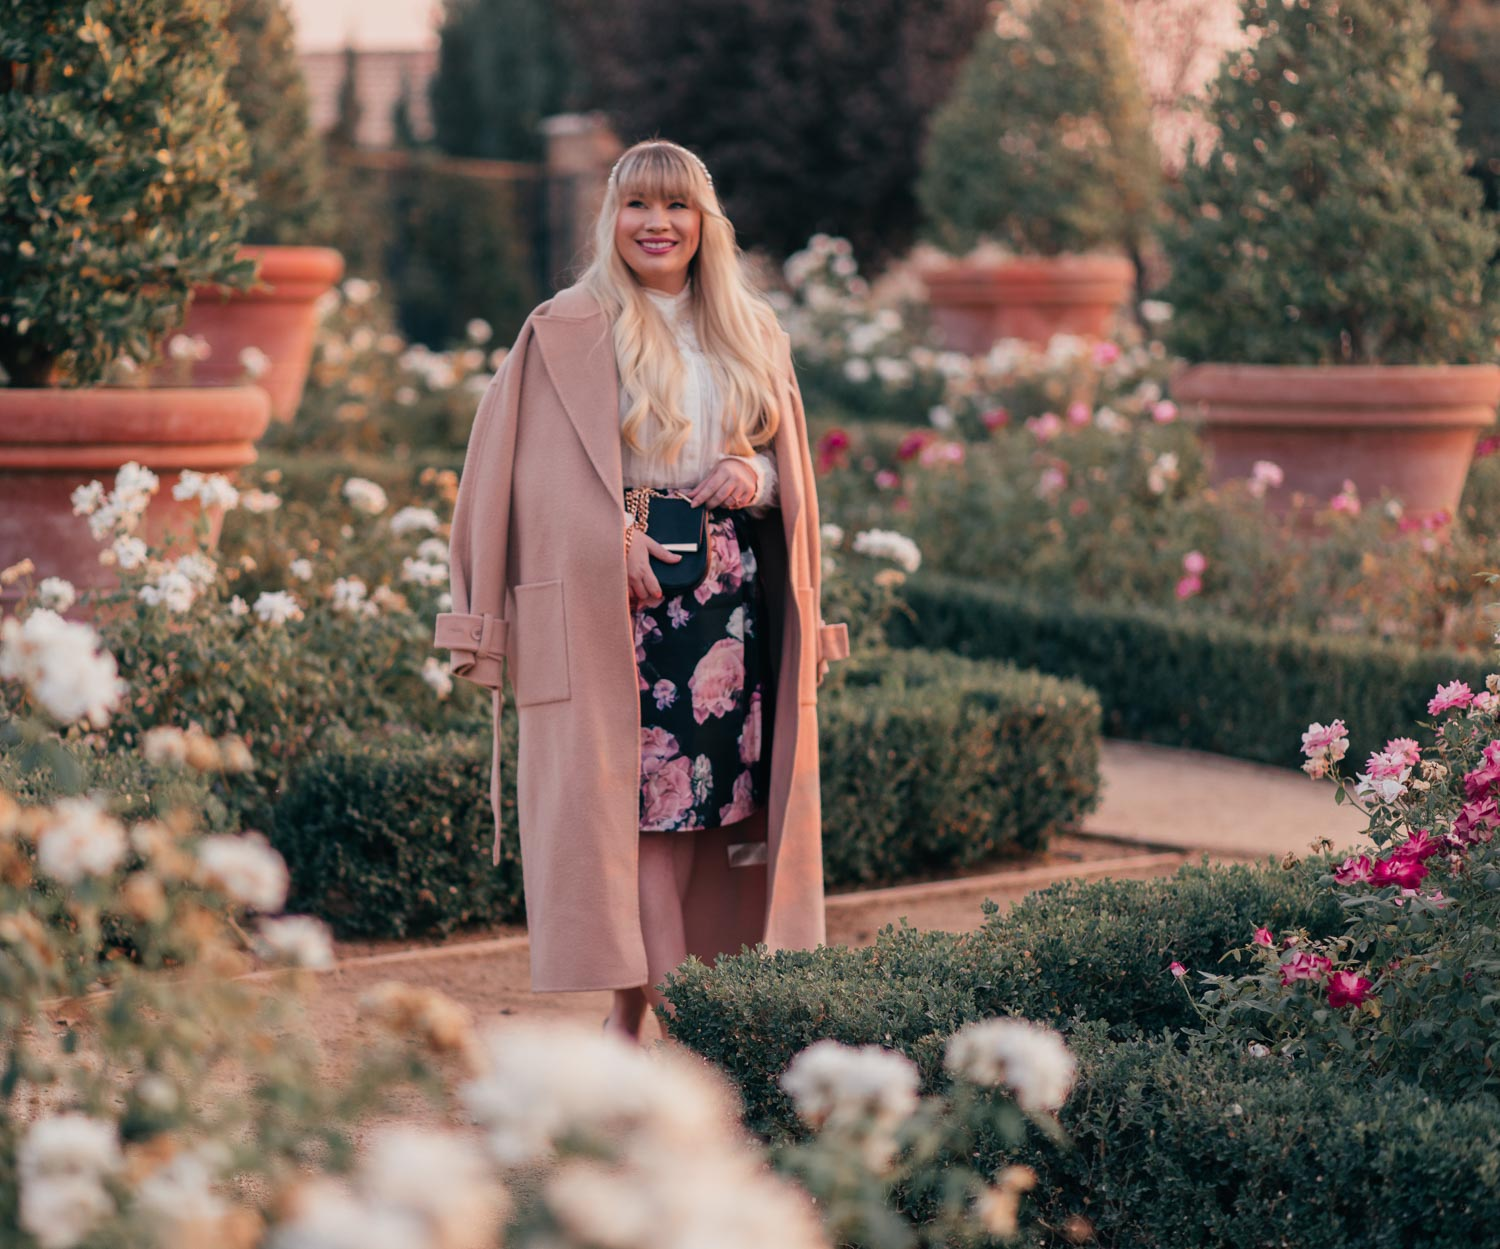 Fashion Blogger Elizabeth Hugen of Lizzie in Lace share 7 Tips for Mastering French Girl Style along with her gorgeous nude BA&SH coat and white BA&SH eyelet top